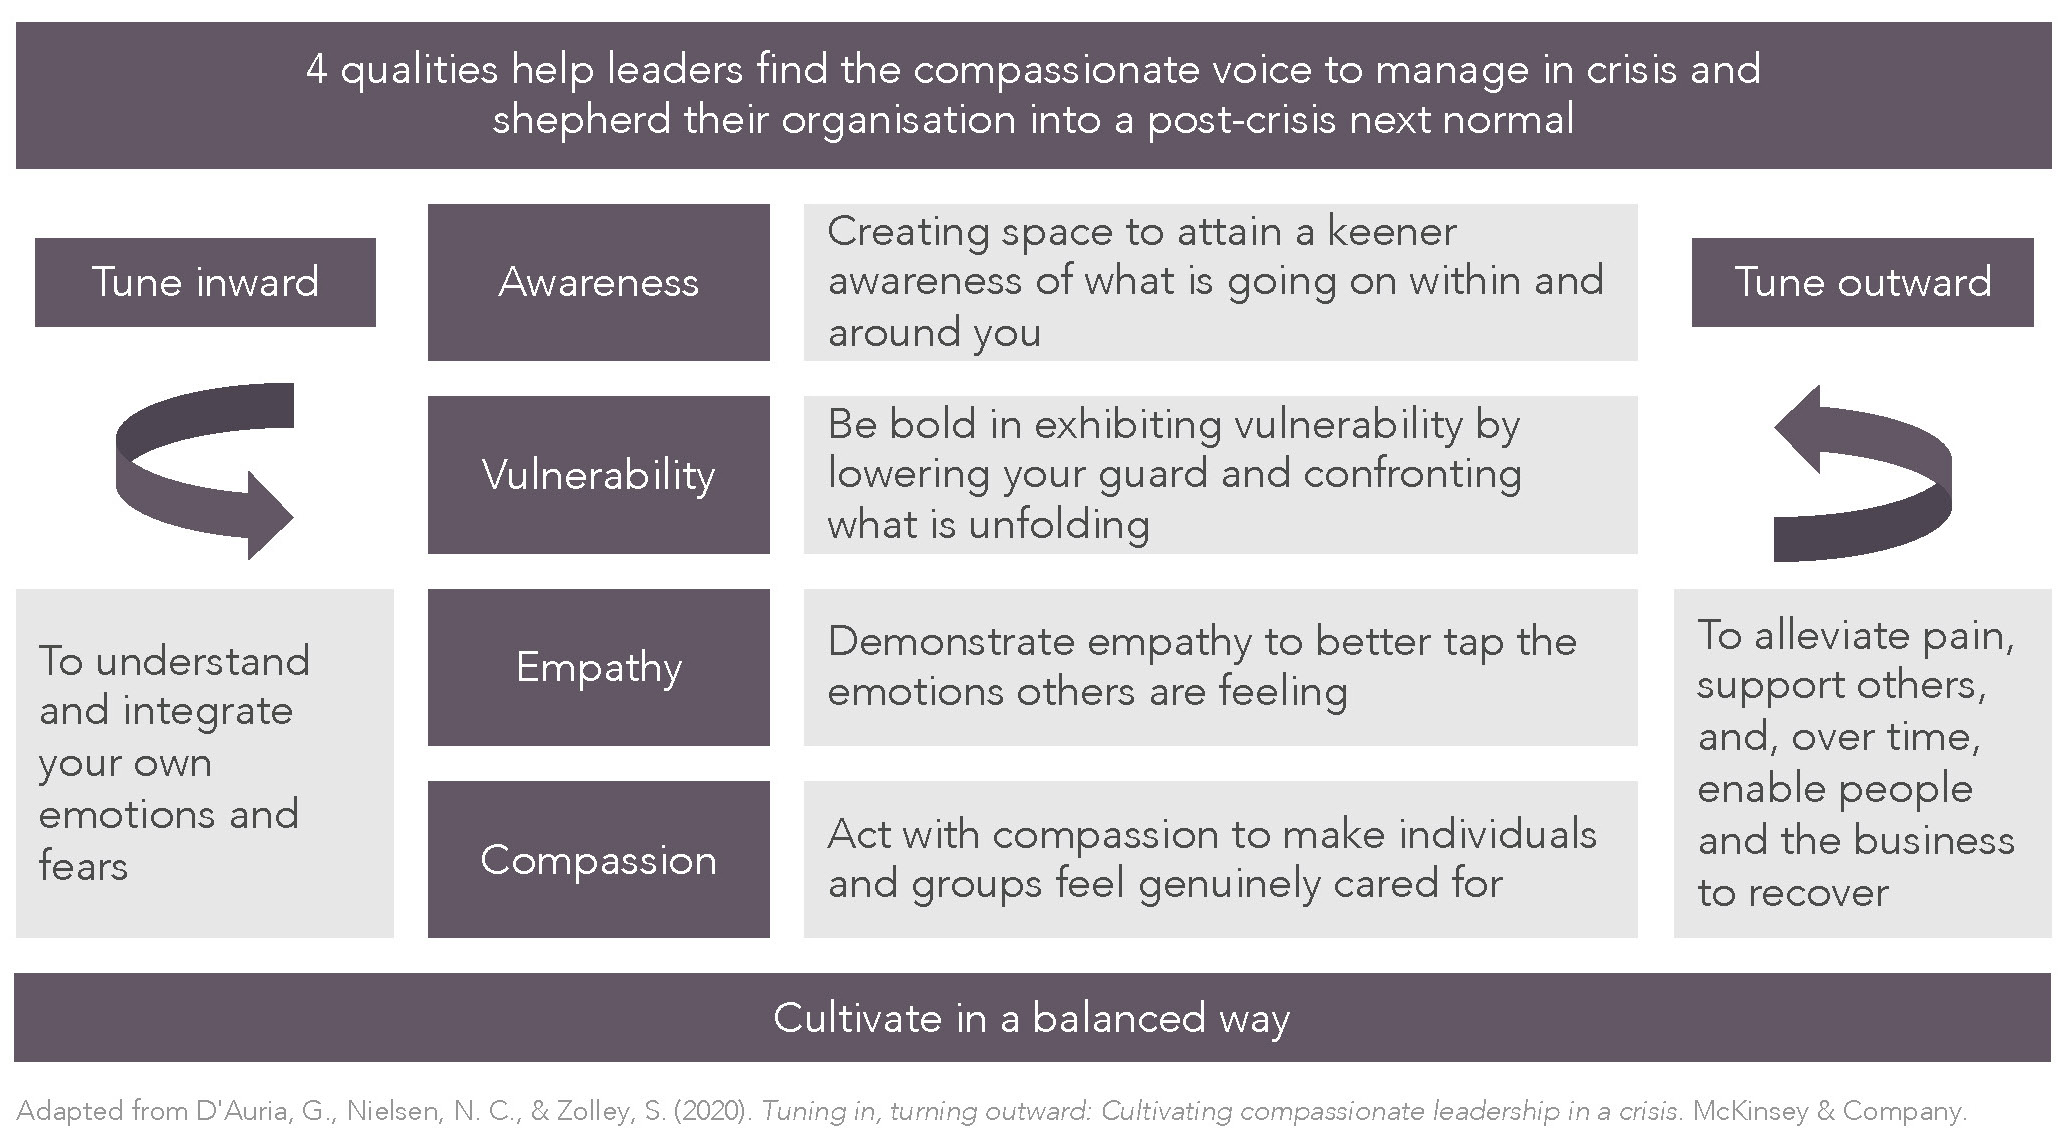 Awareness, vulnerability, empathy and compassion are 4 qualities to help leaders find the compassionate voice to manage in crisis and shepherd their organisation into a post crisis next normal